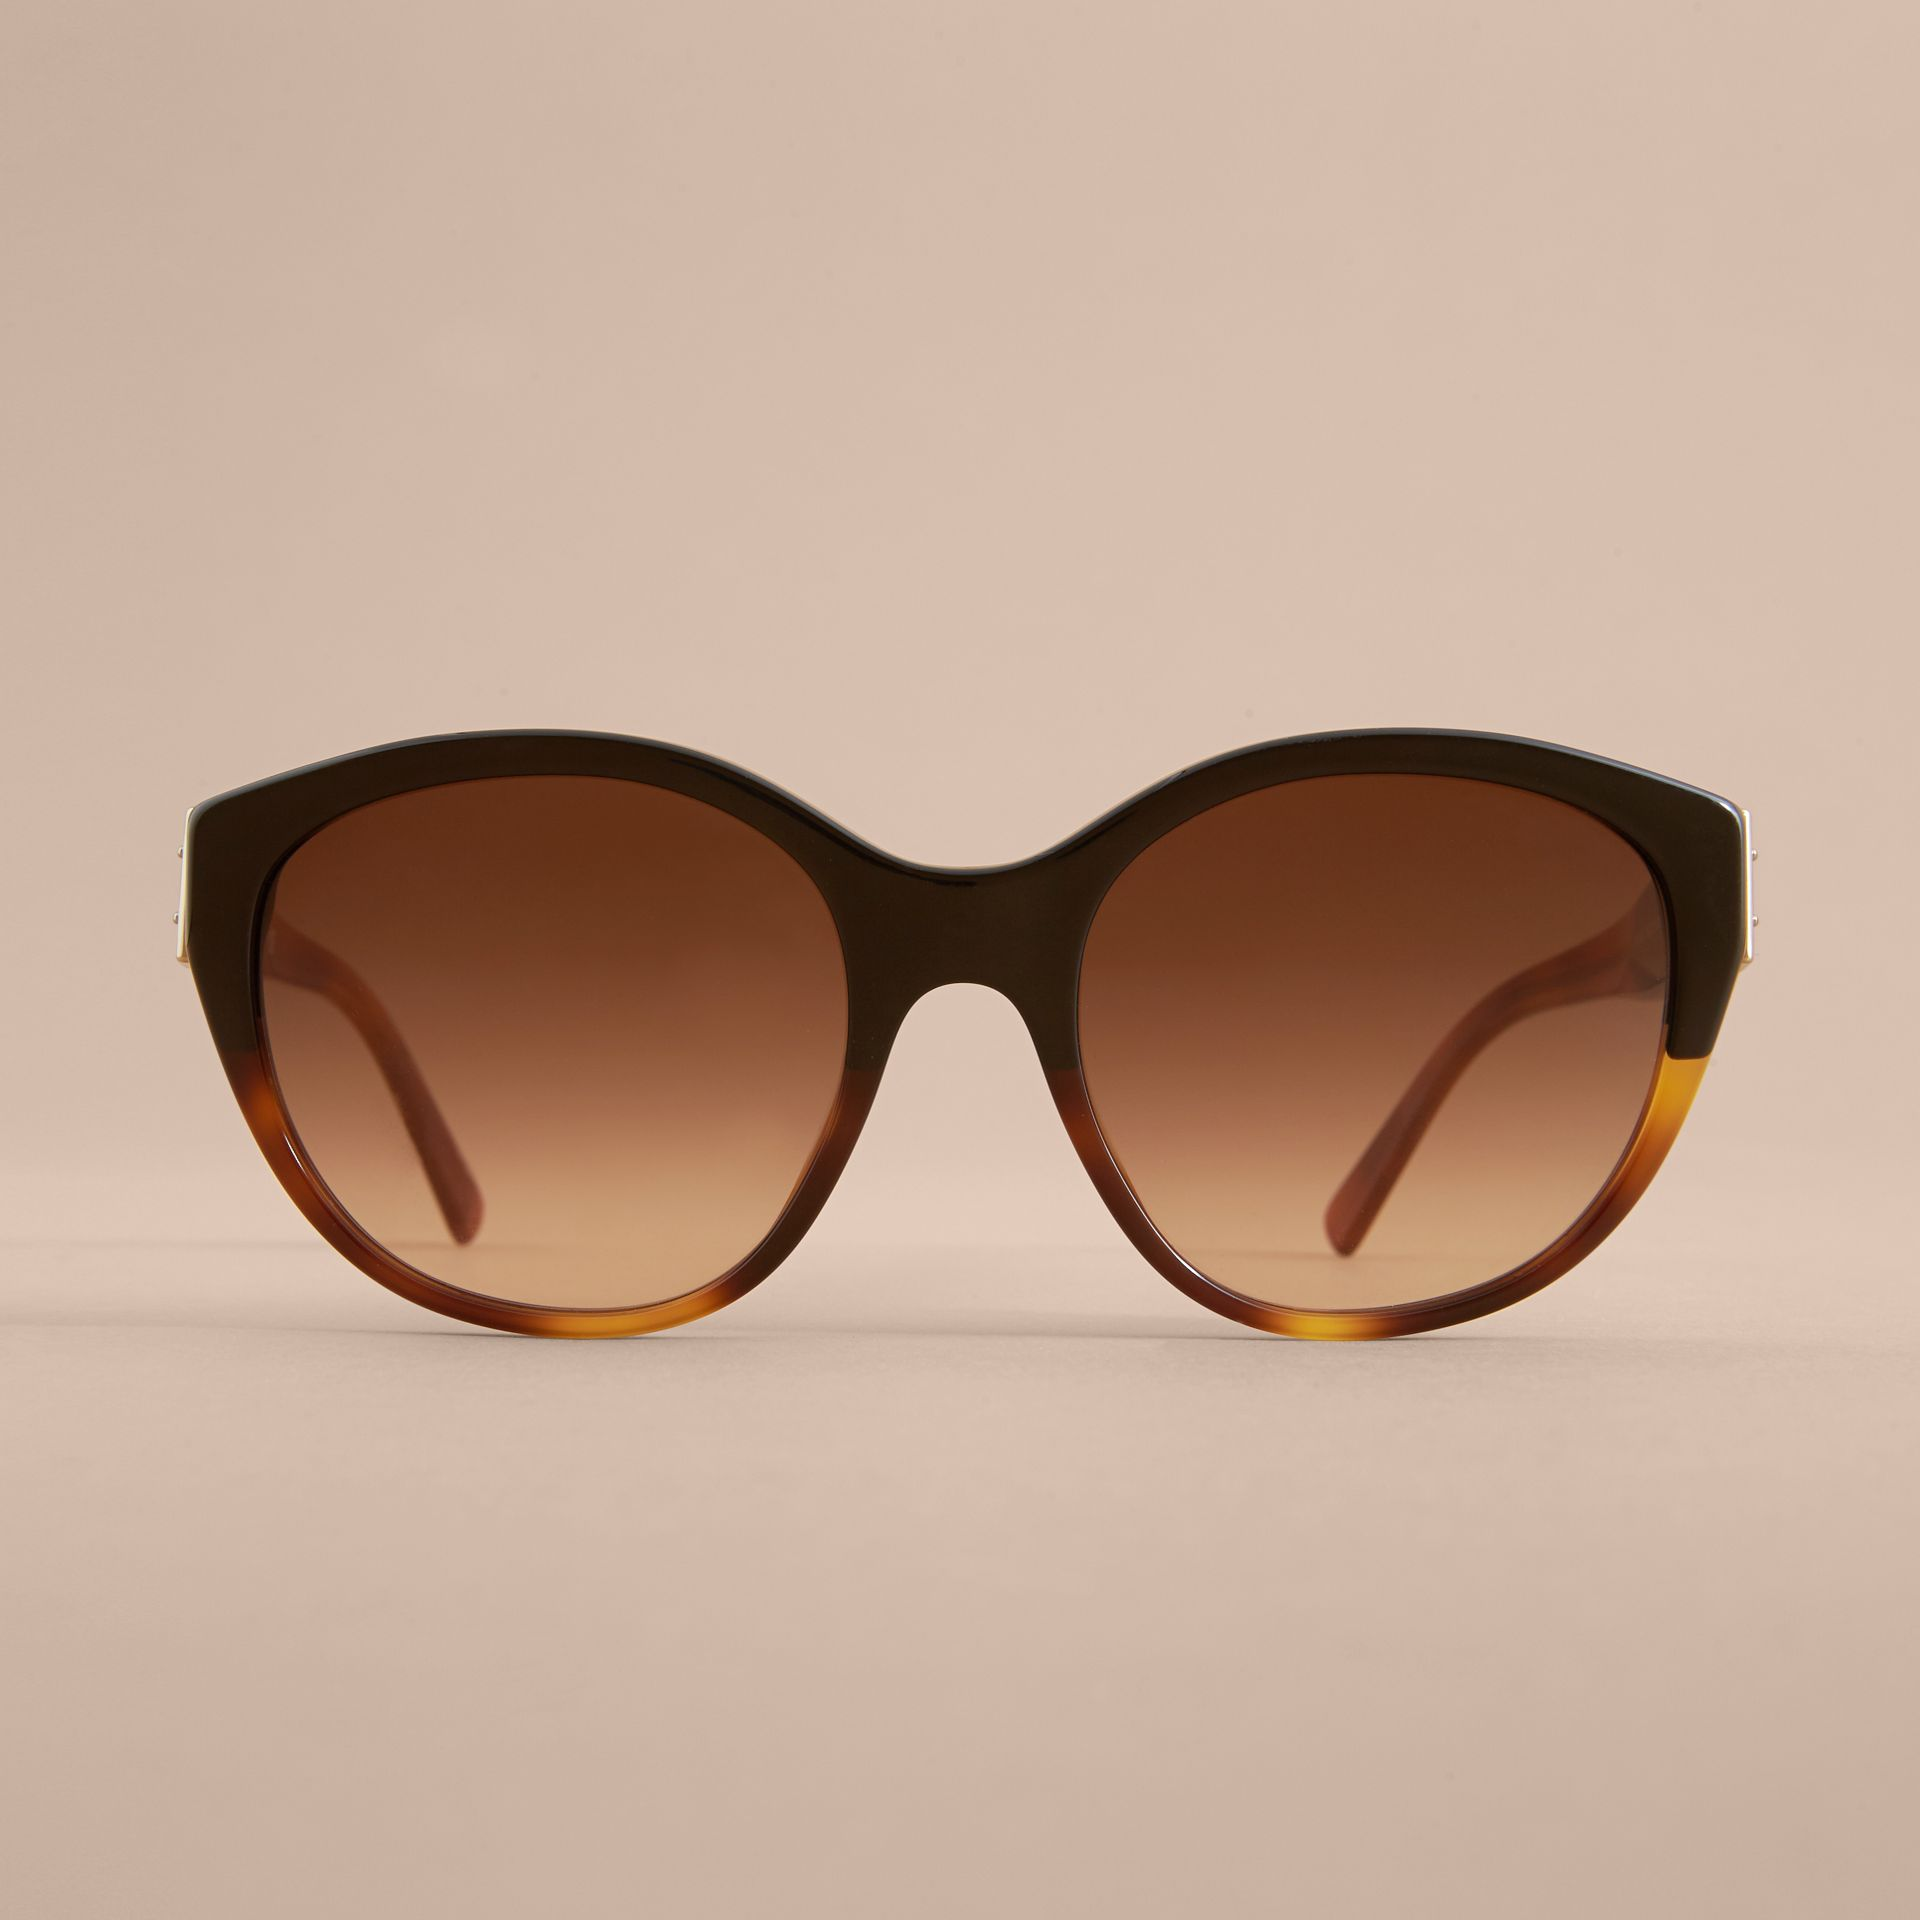 Buckle Detail Round Frame Sunglasses in Tortoise Amber - Women | Burberry - gallery image 3